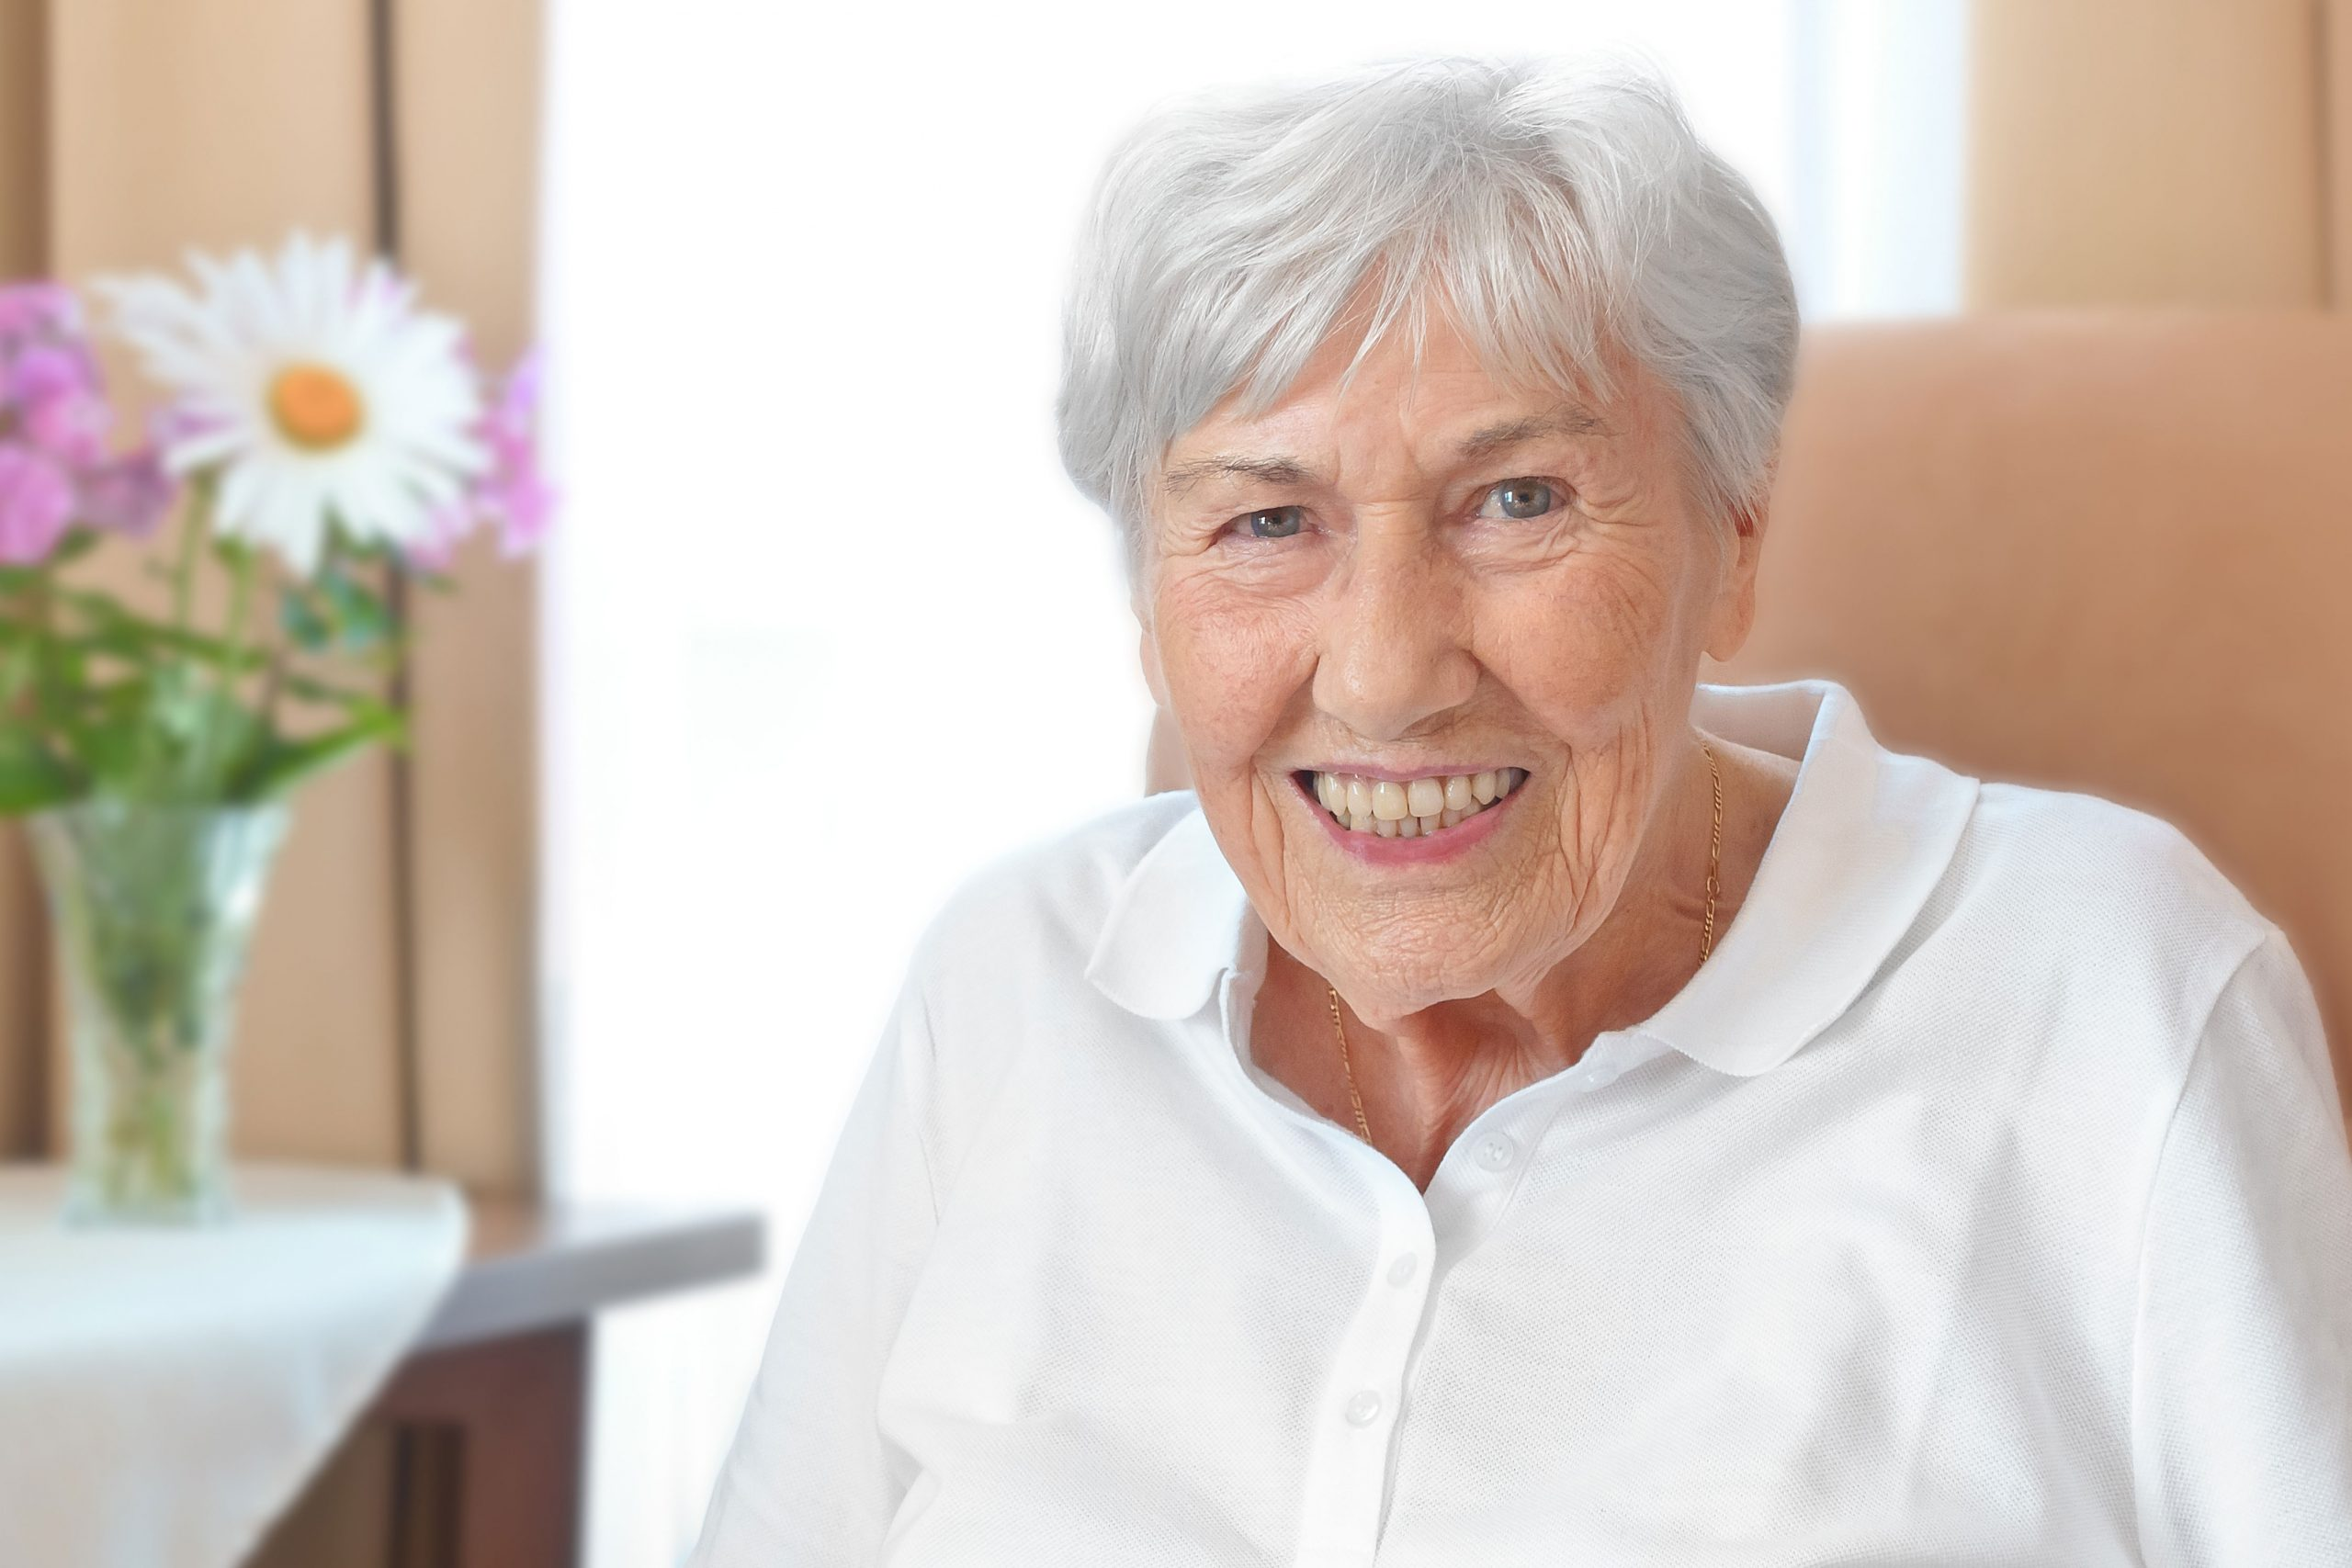 Smiling elderly woman sitting on couch